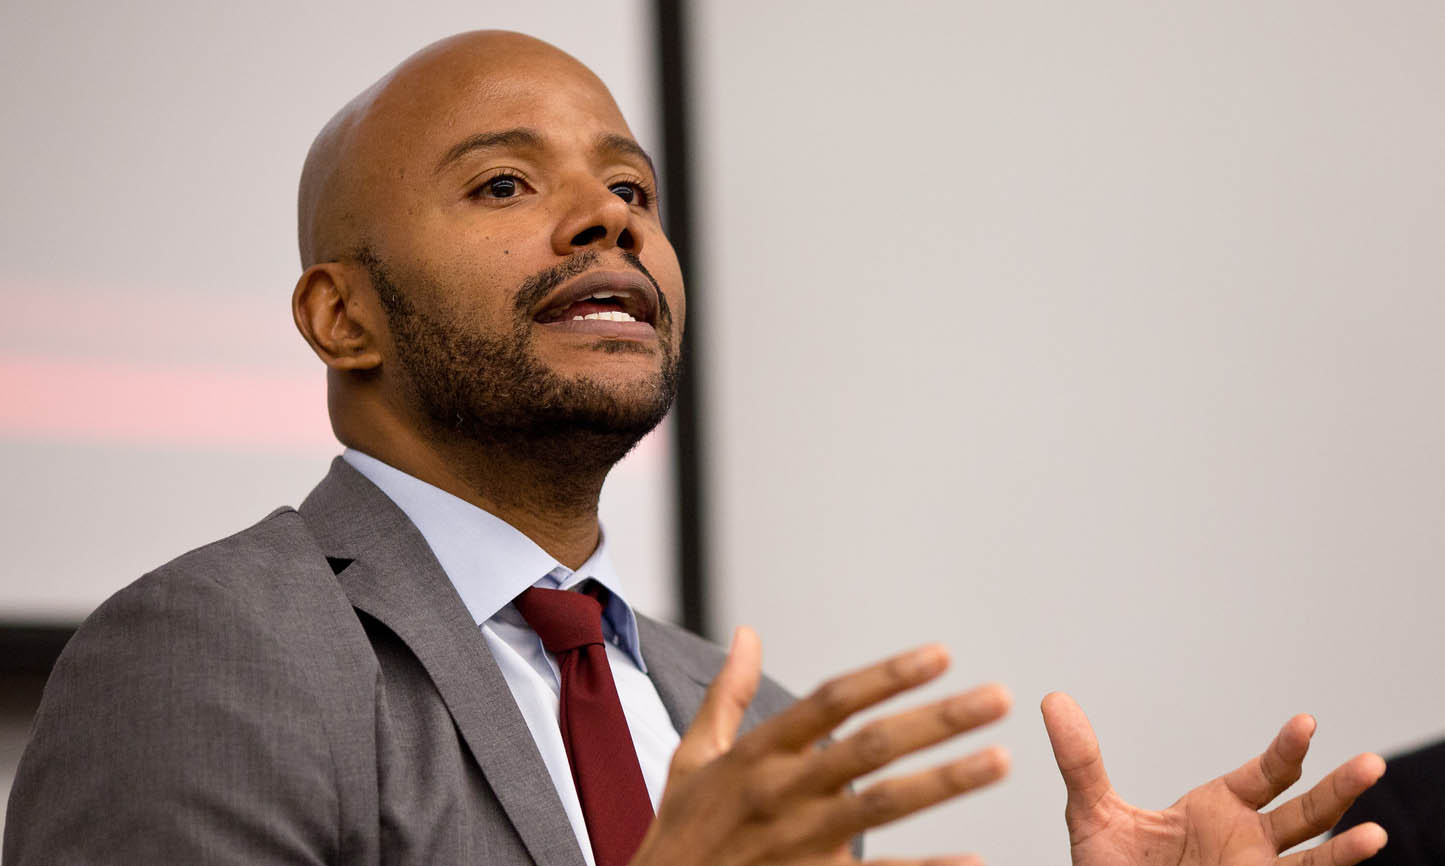 The LBJ School's Dr. Peniel Joseph during the Kerner Commission event on March 5, 2018